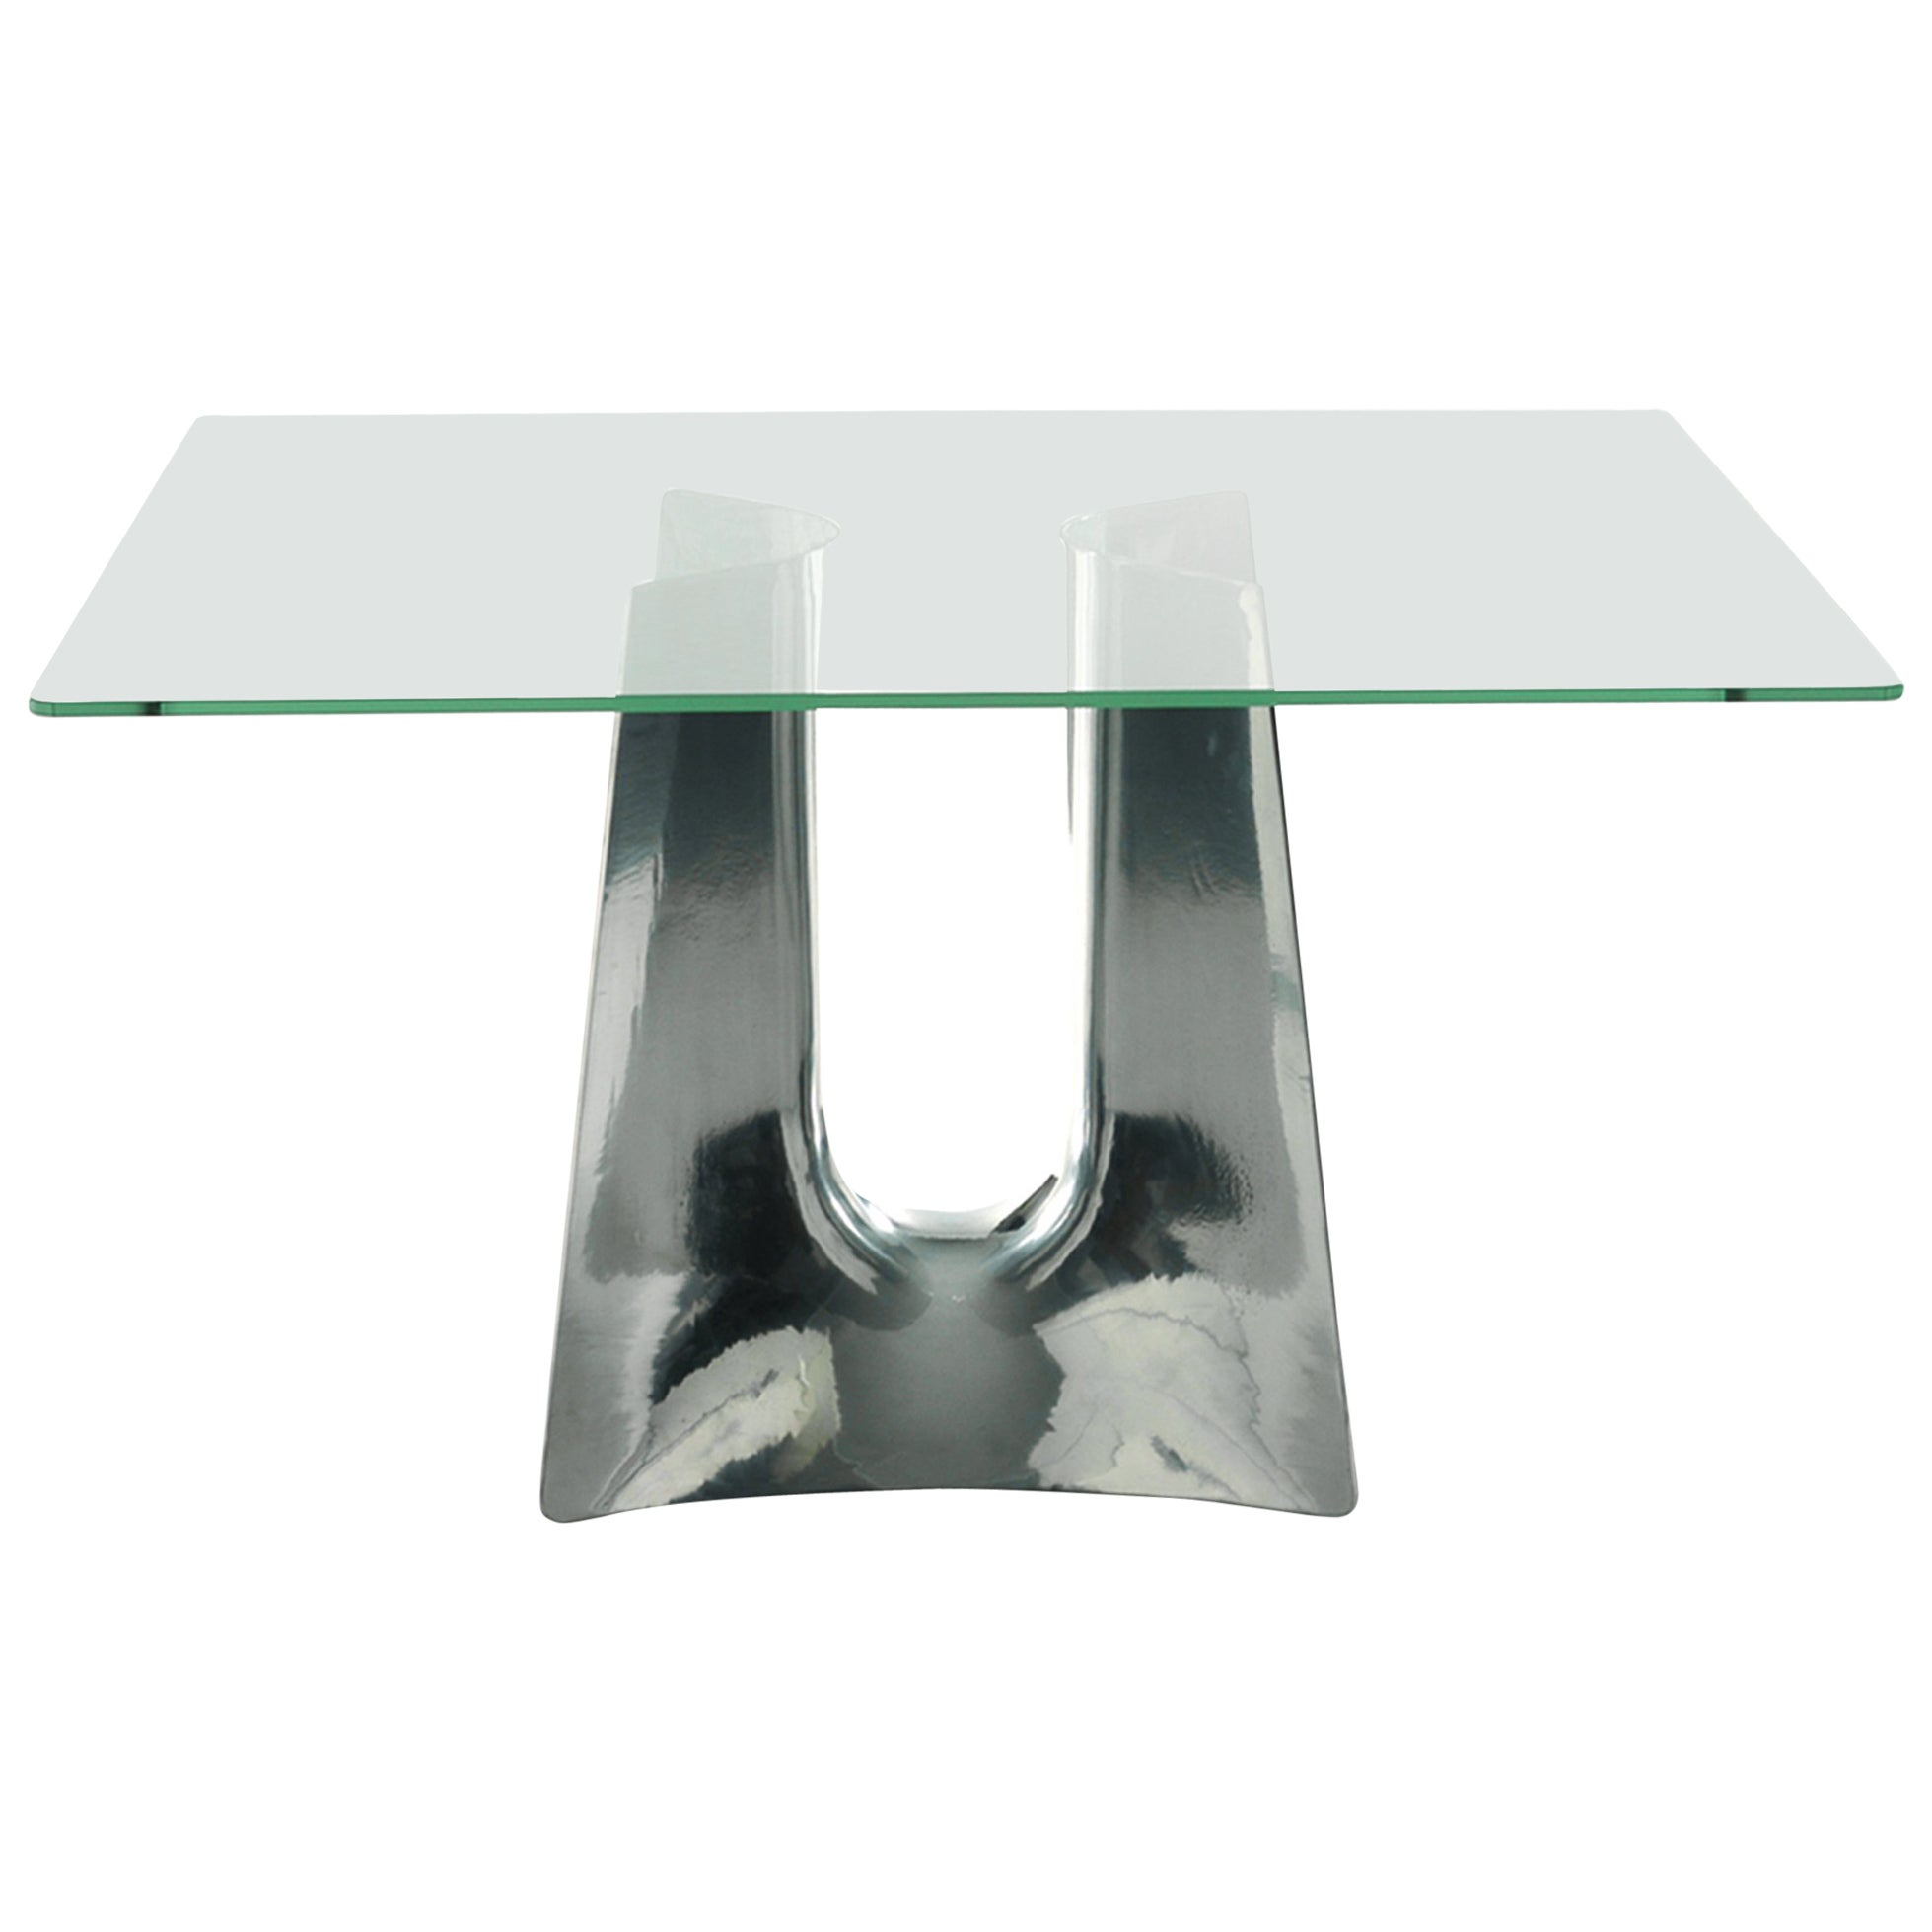 Bentz High Square Aluminum Table W/ Glass Top by Jeff Miller